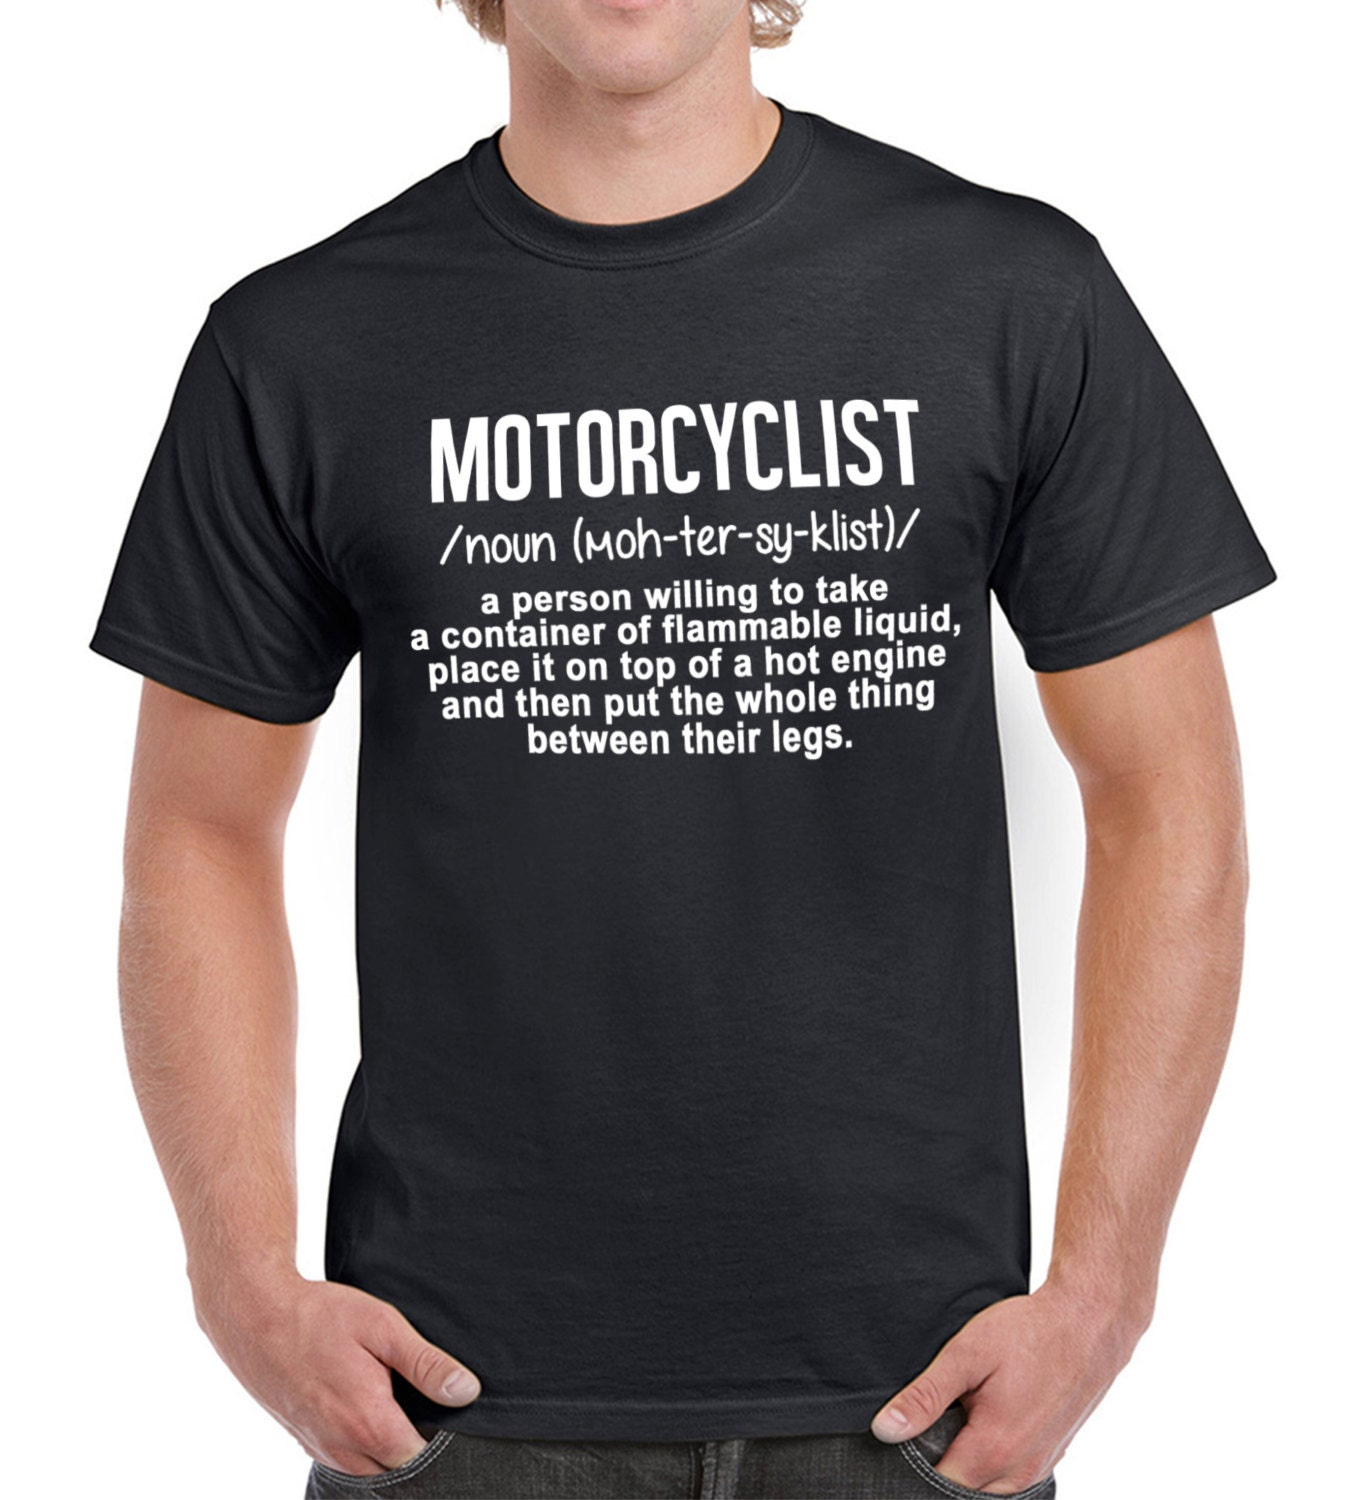 Motorcyclist Meaning T Shirt Motorcyclist T Shirt Funny Motorbike T Shirt Motorbike Rider T Shirt Mens Motorcyclist T Shirt